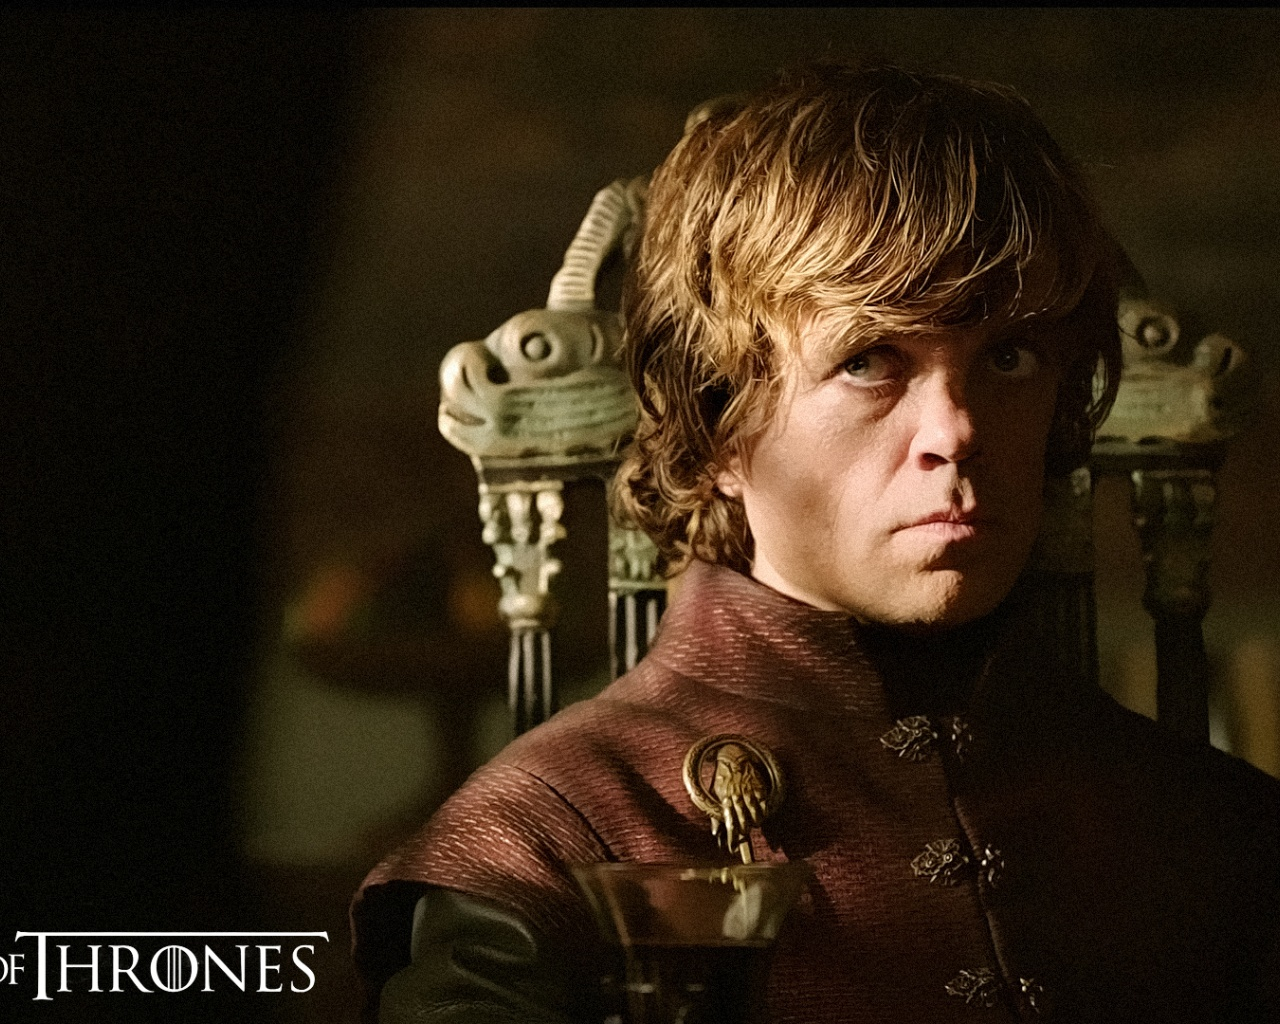 1280x1024 Tyrion Game Of Thrones desktop PC and Mac wallpaper 1280x1024